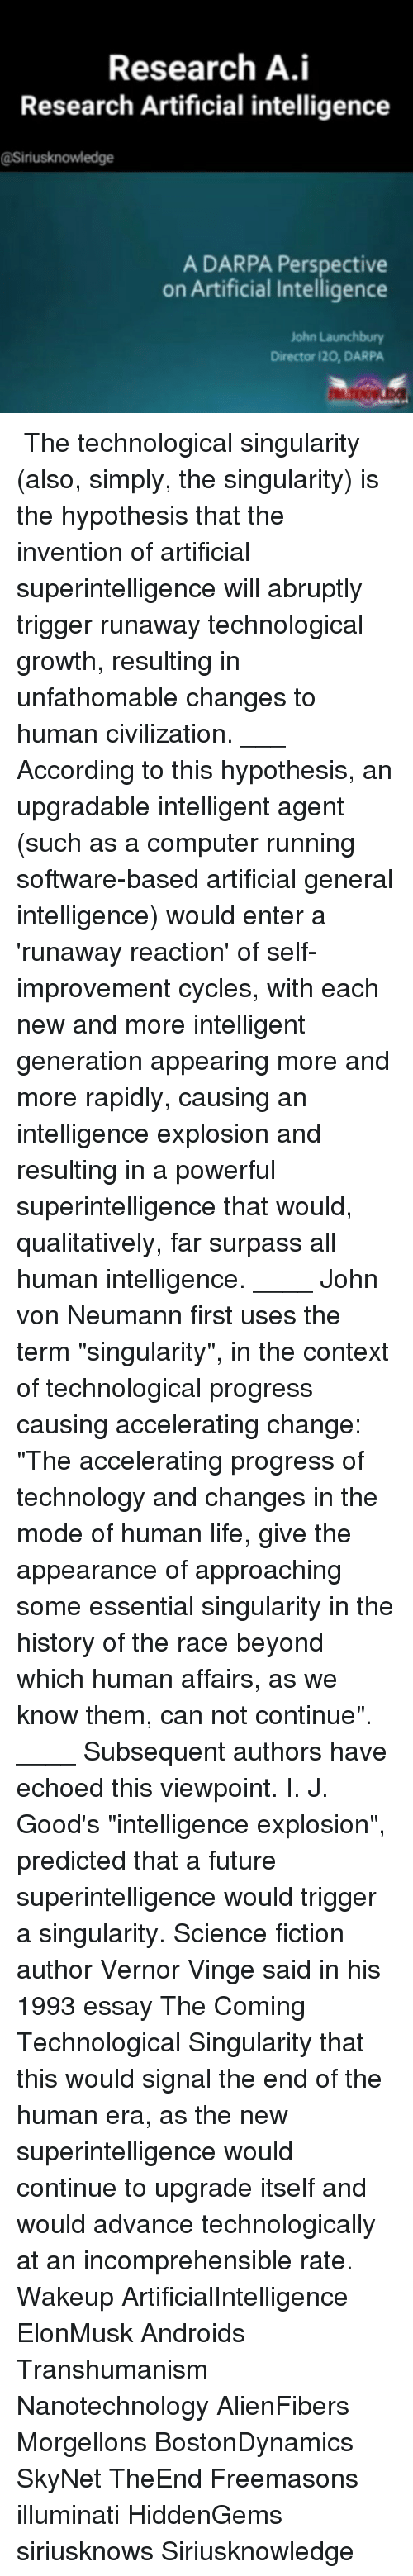 a essay on superintelligence Ethical guidelines for a superintelligence ernest davis dept of computer science new york university new york, ny 10012 davise@csnyuedu october 23, 2014.